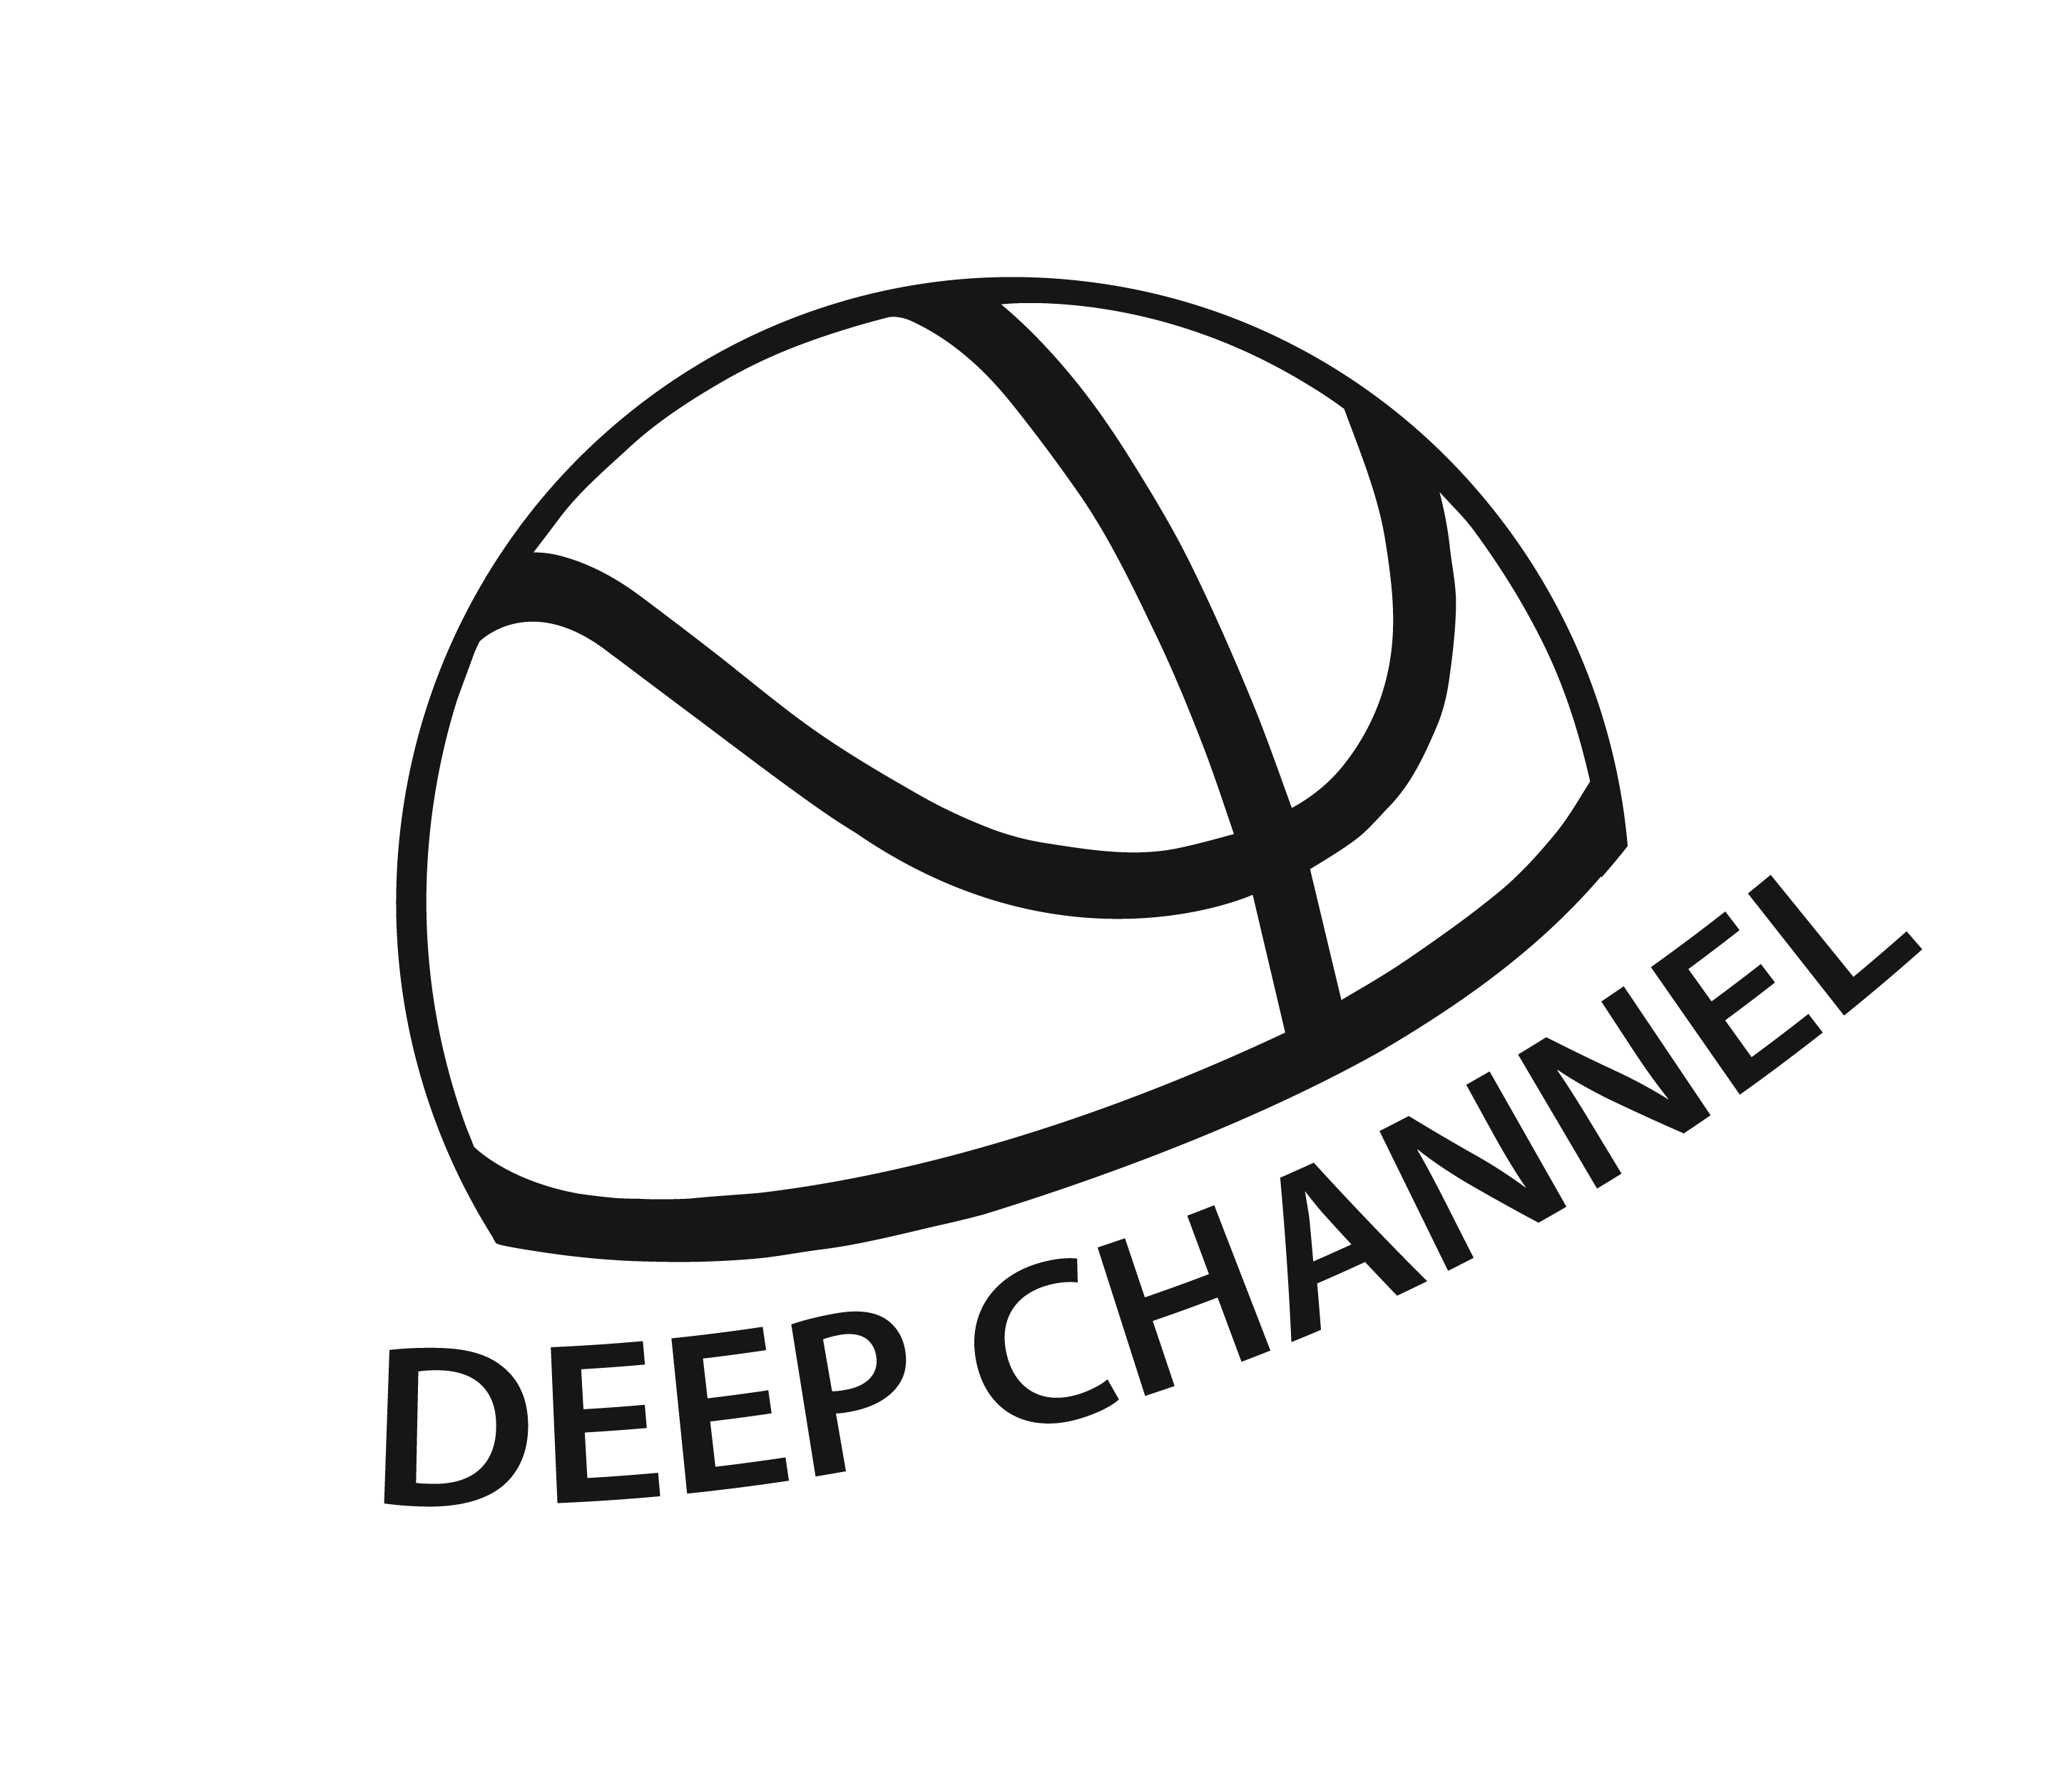 Deep Channel.png